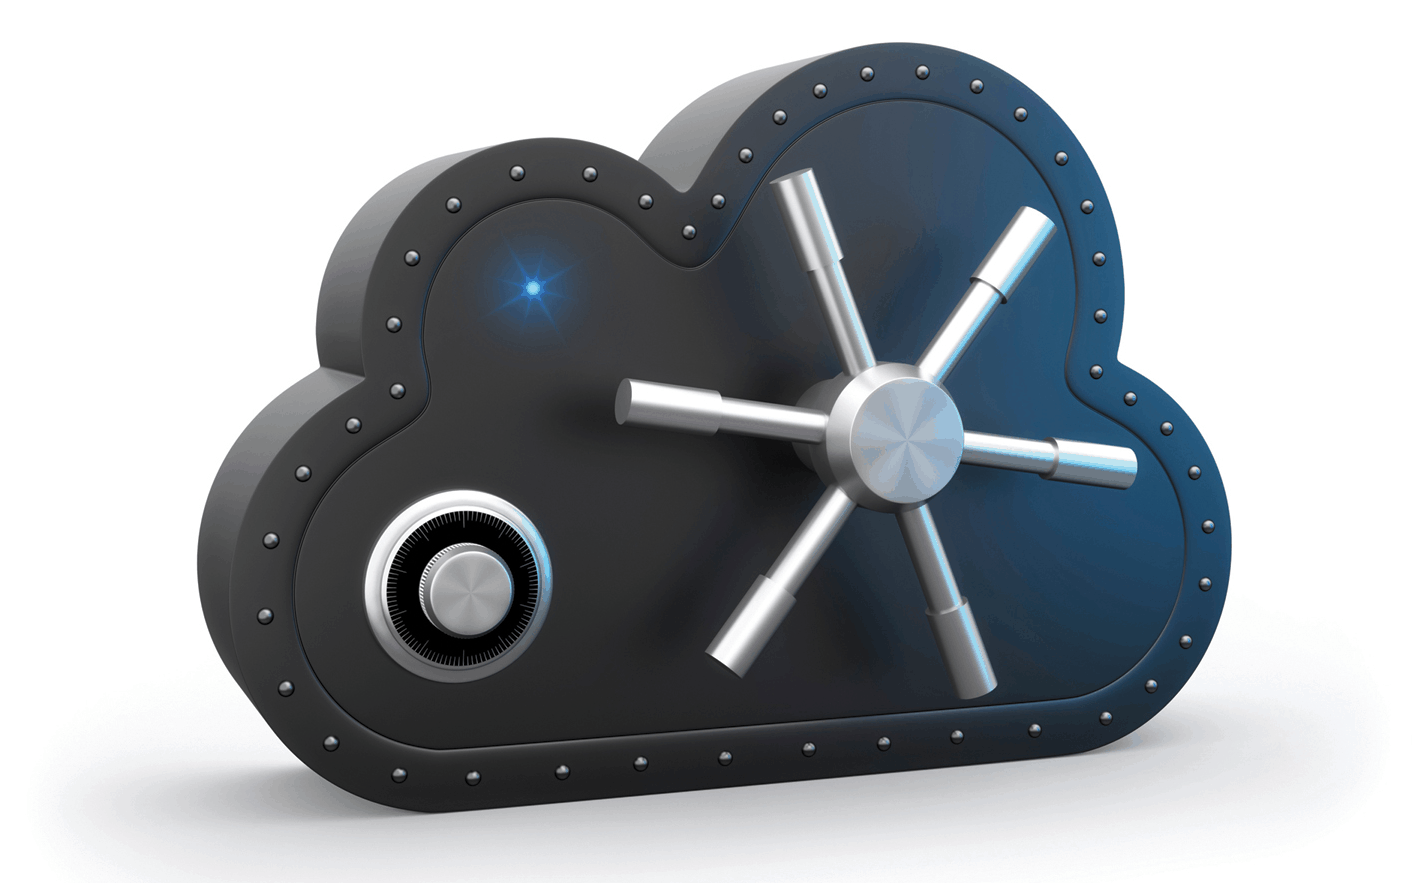 Three Dropbox Competitors For Secure Storage